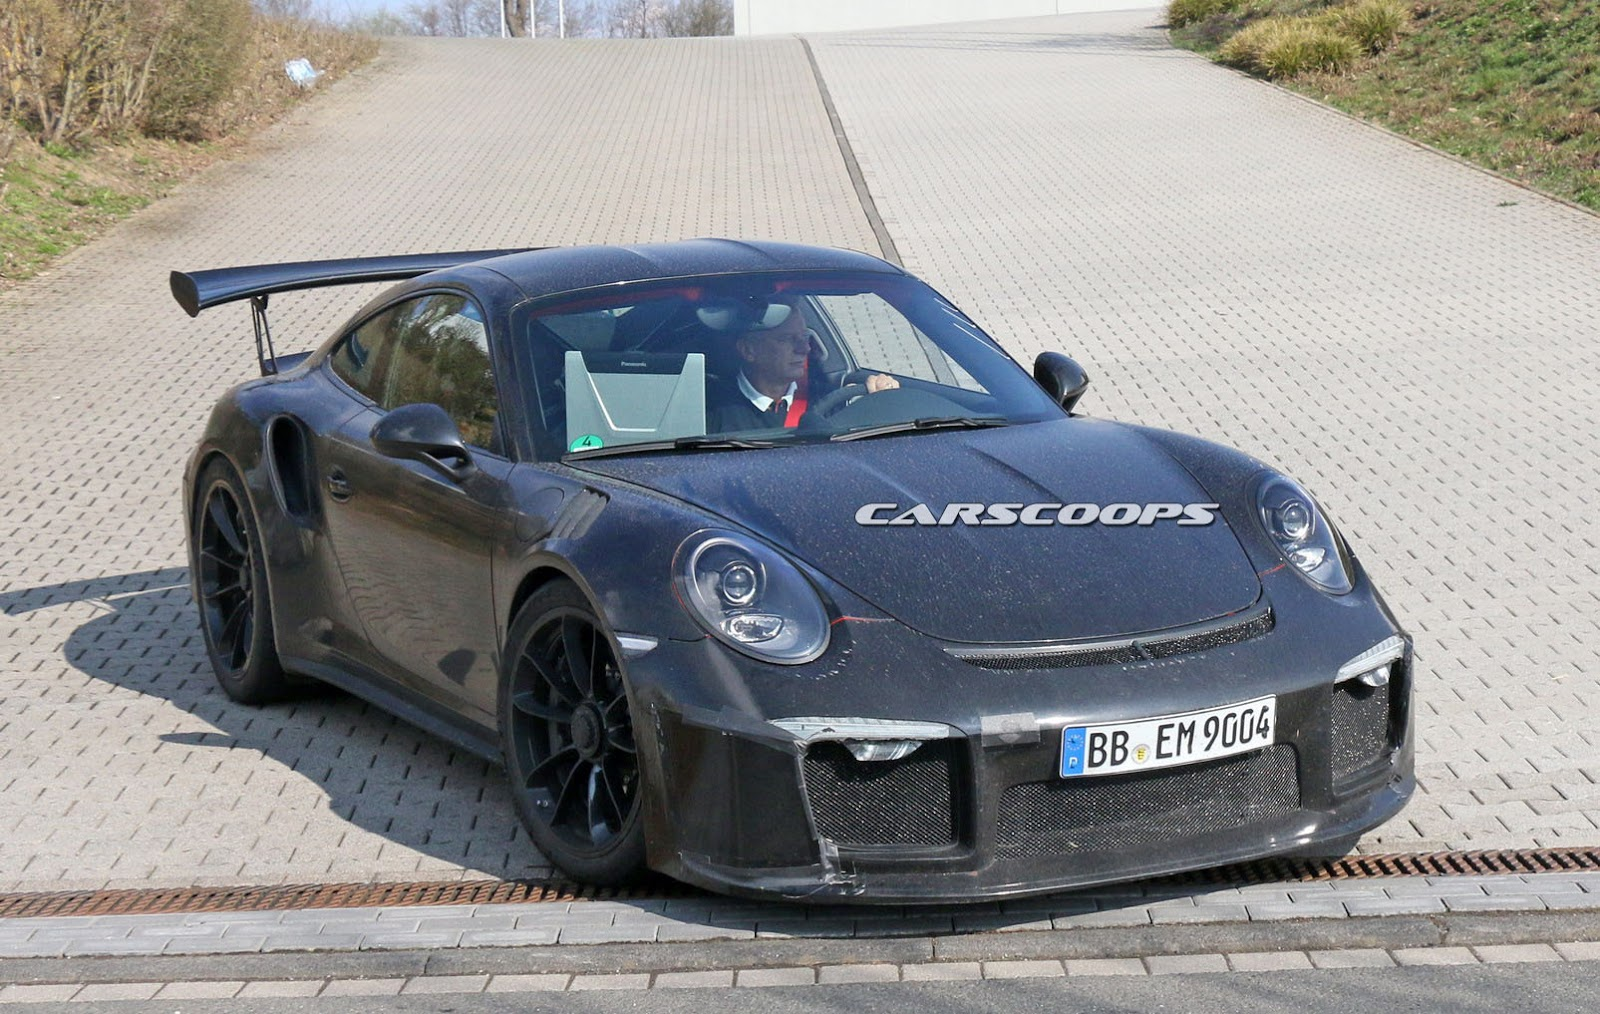 These Are the First Spy Shots with the 2017 Porsche 911 GT3 RS 4.2 ...